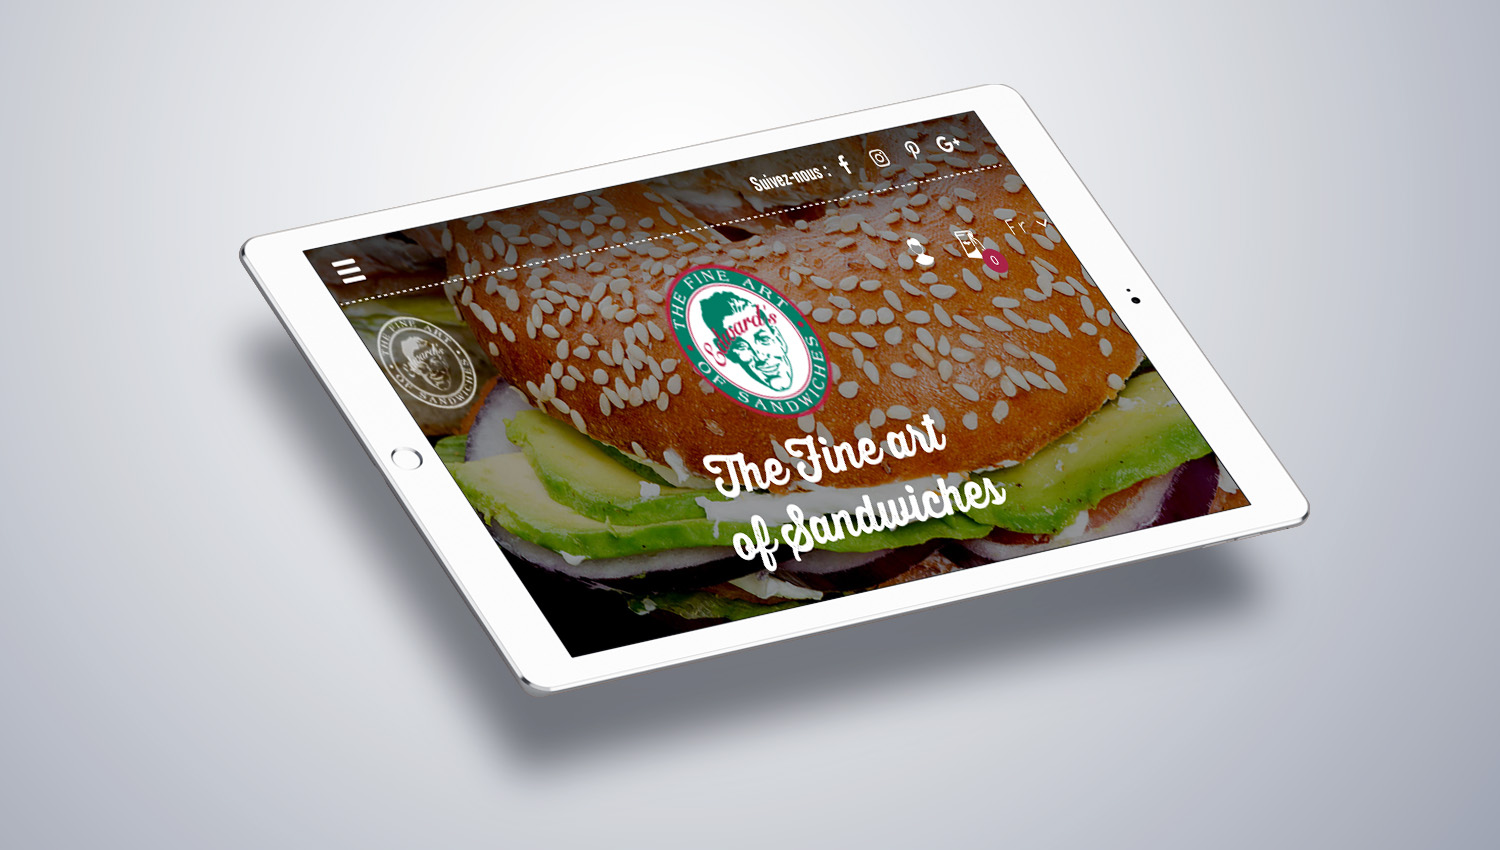 Web design tablet view for Edwards Sandwiches 2 by 8 Ways